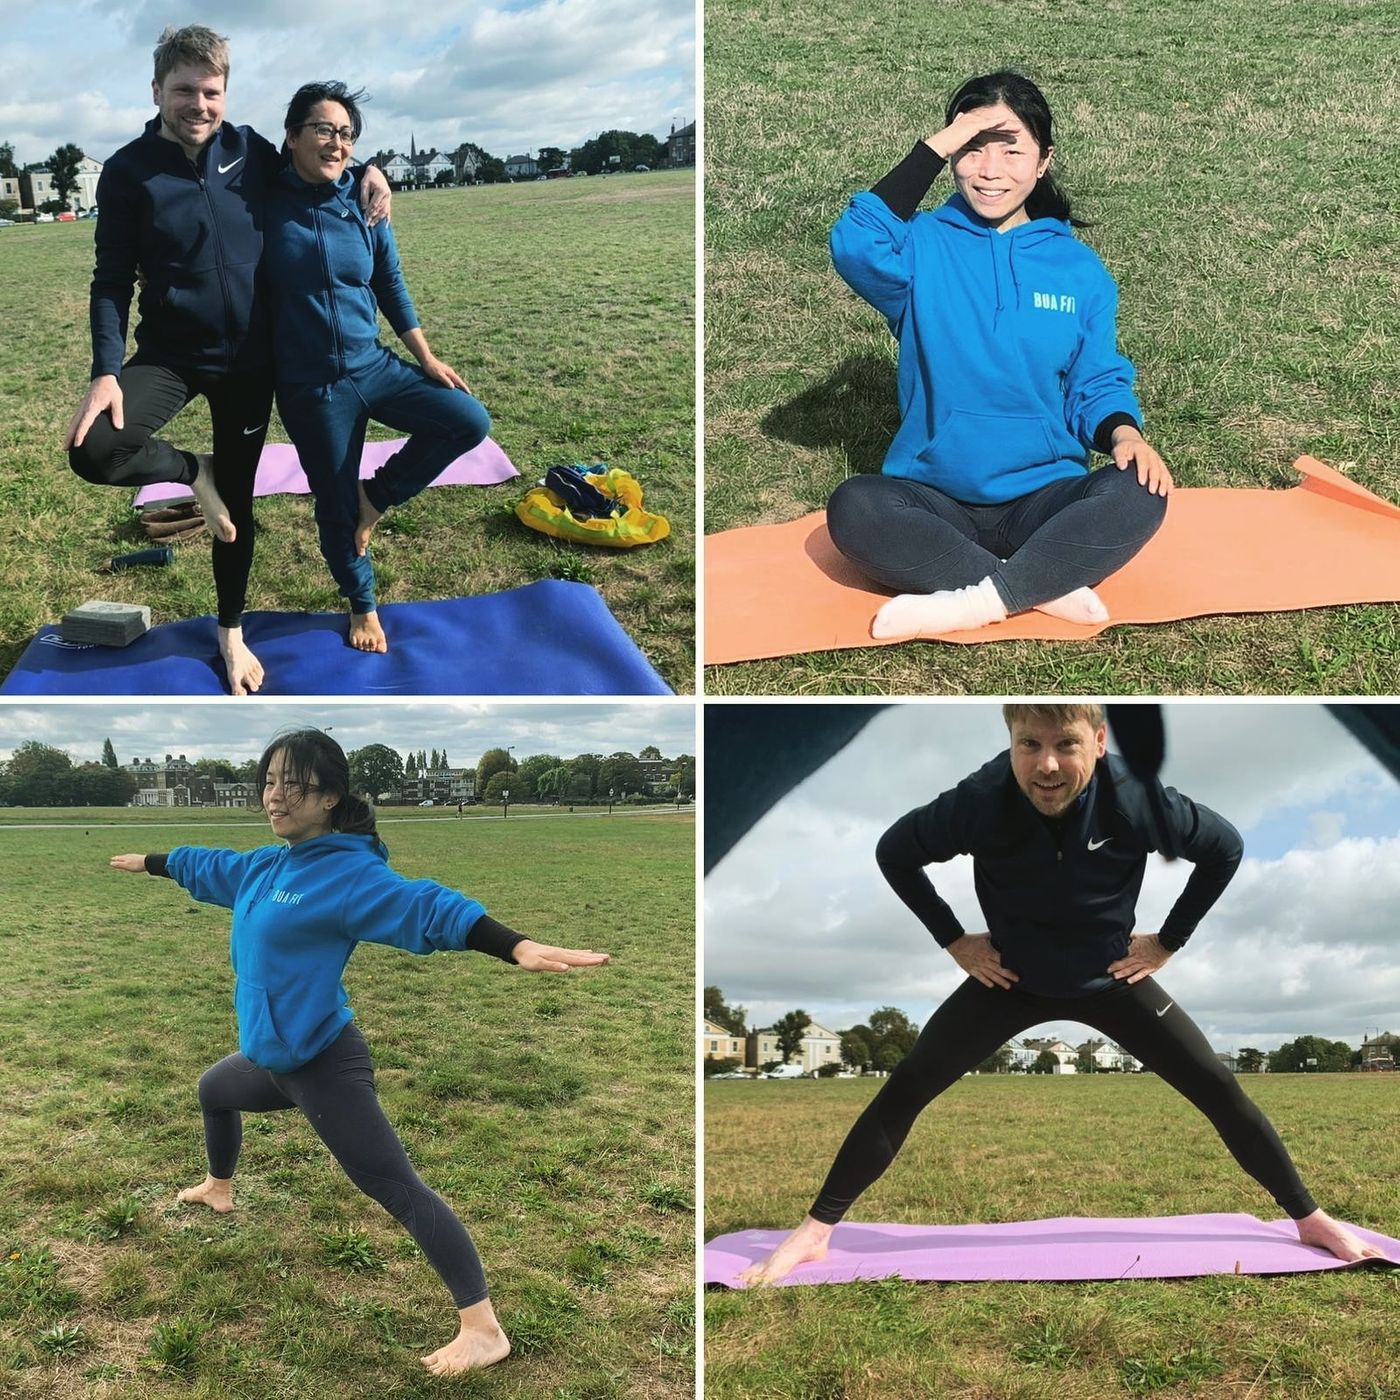 Outdoor yoga in Blackheath 😍 join us every Saturday 10am https://bua.fit/classes/gSfS18ixRUo0